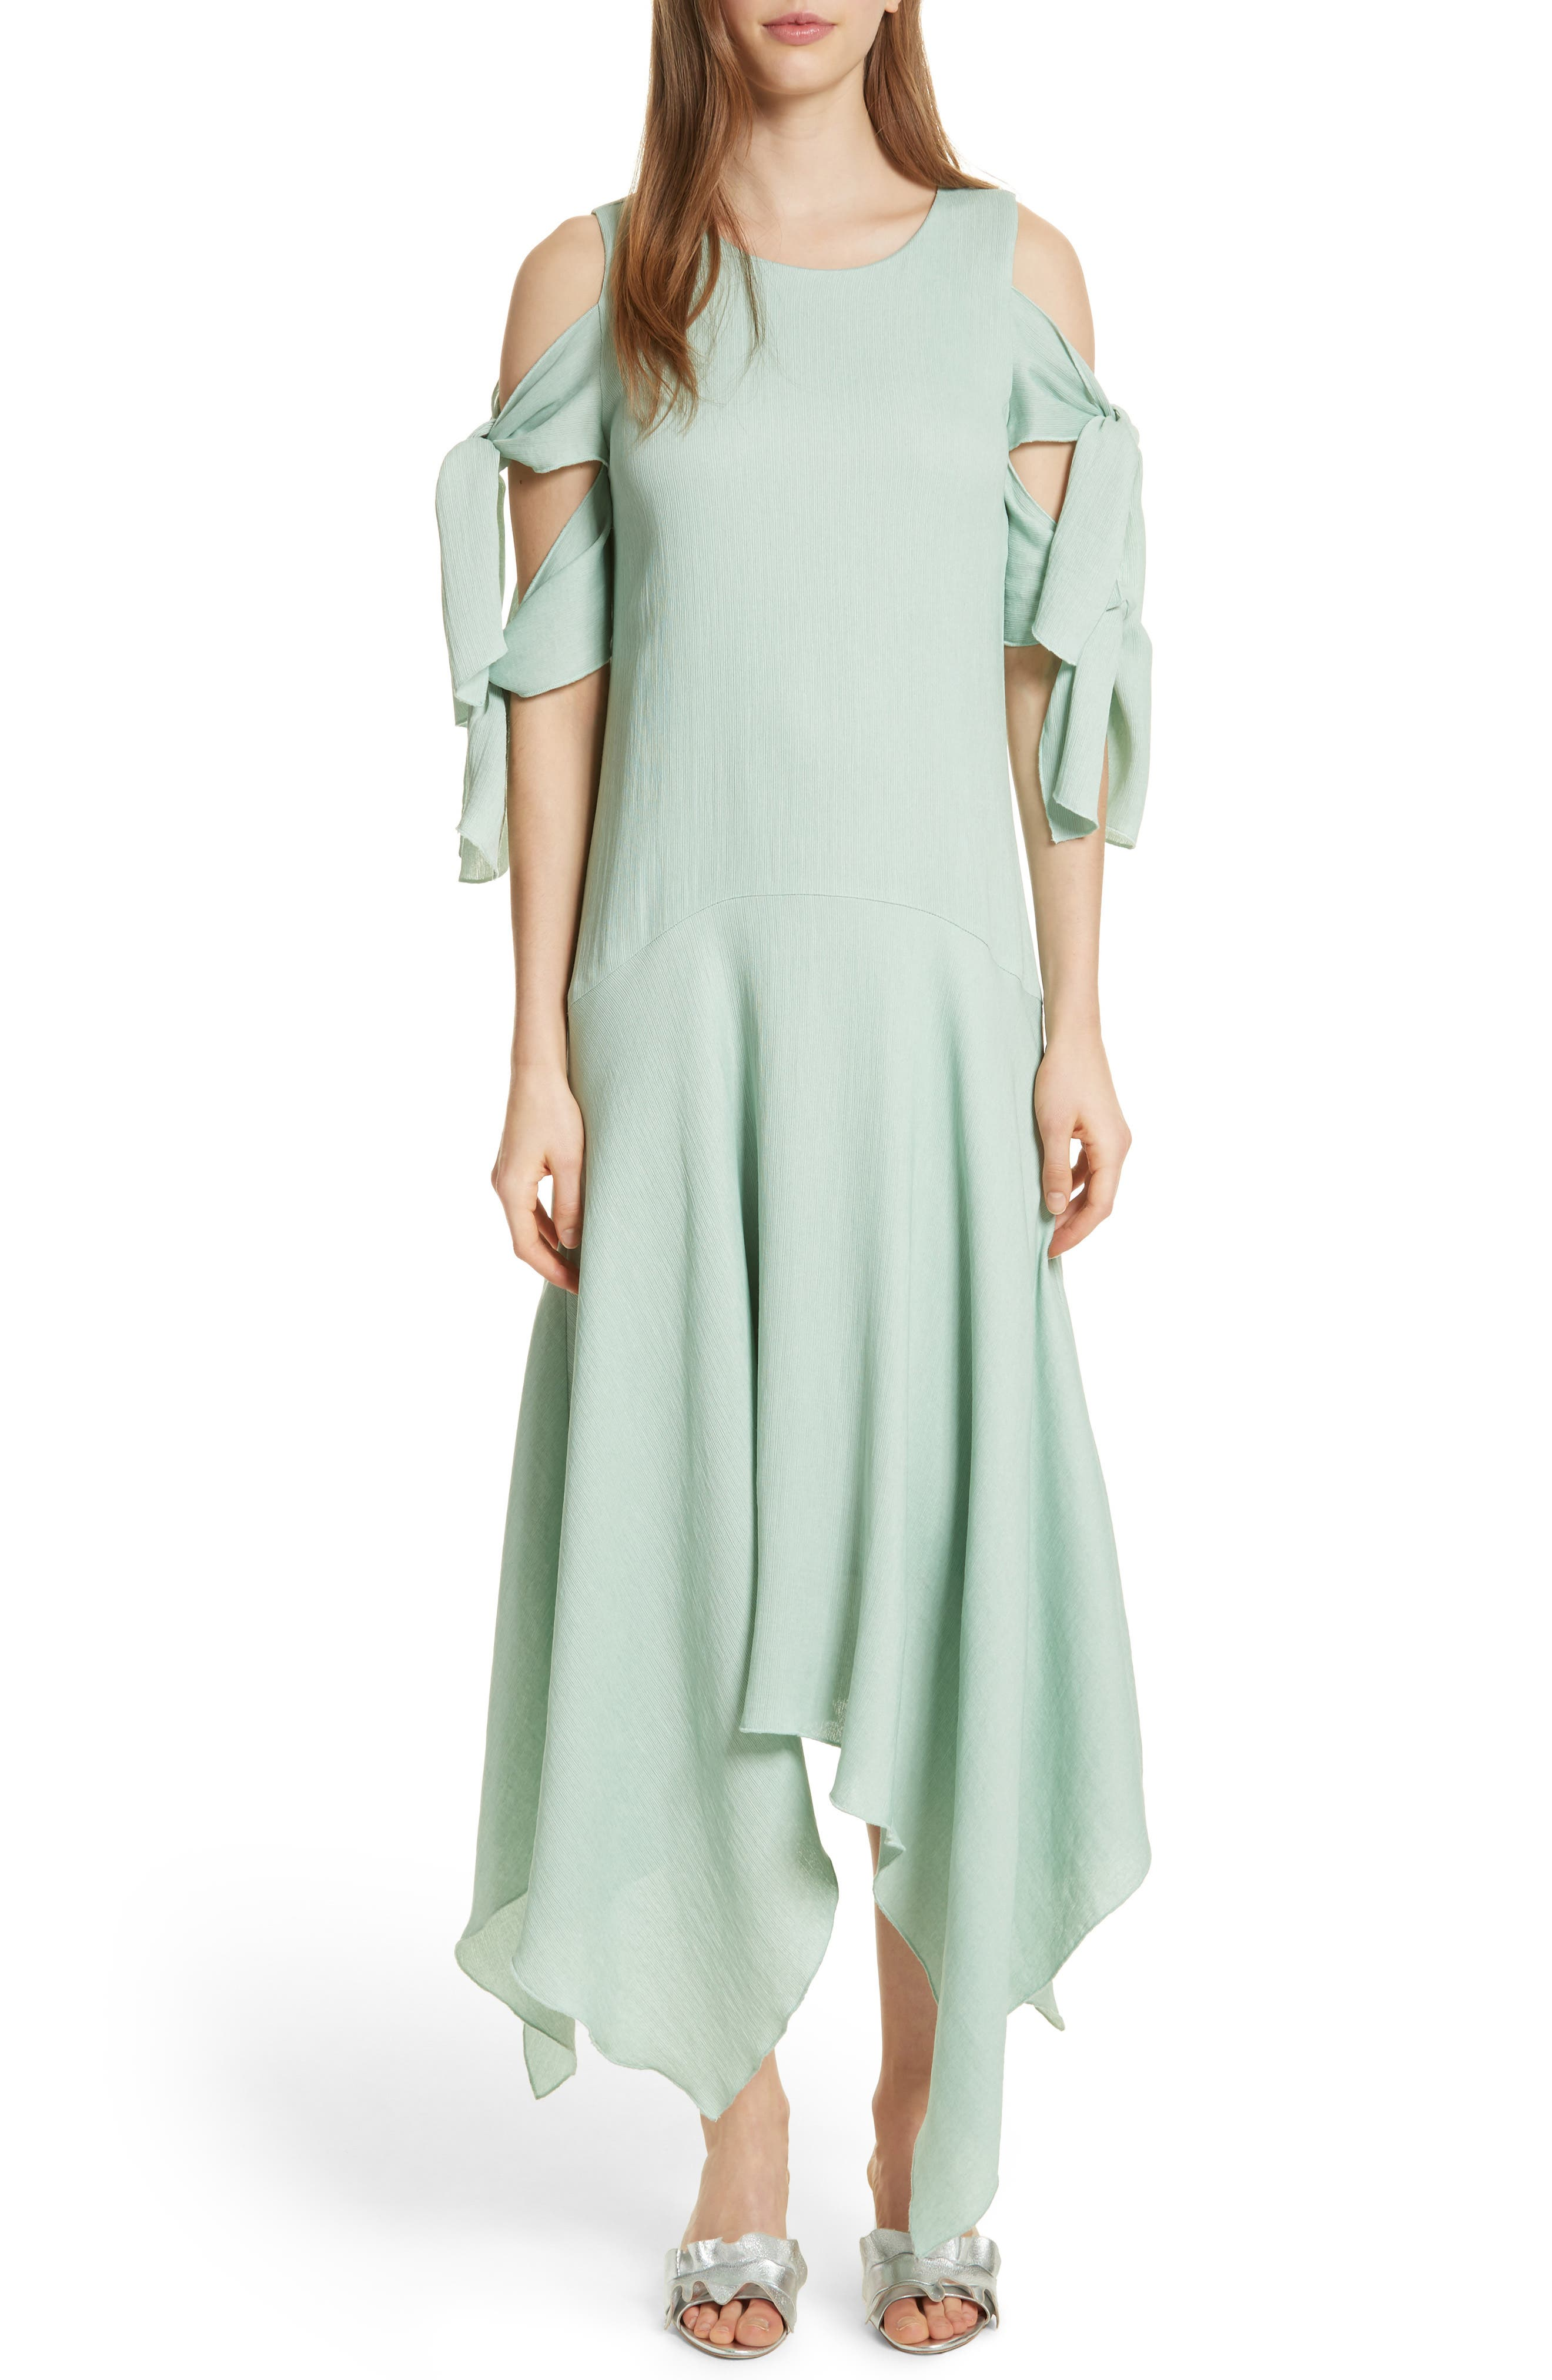 Prose & Poetry Vivianna Drop Waist Midi Dress,                         Main,                         color, Aqua Foam